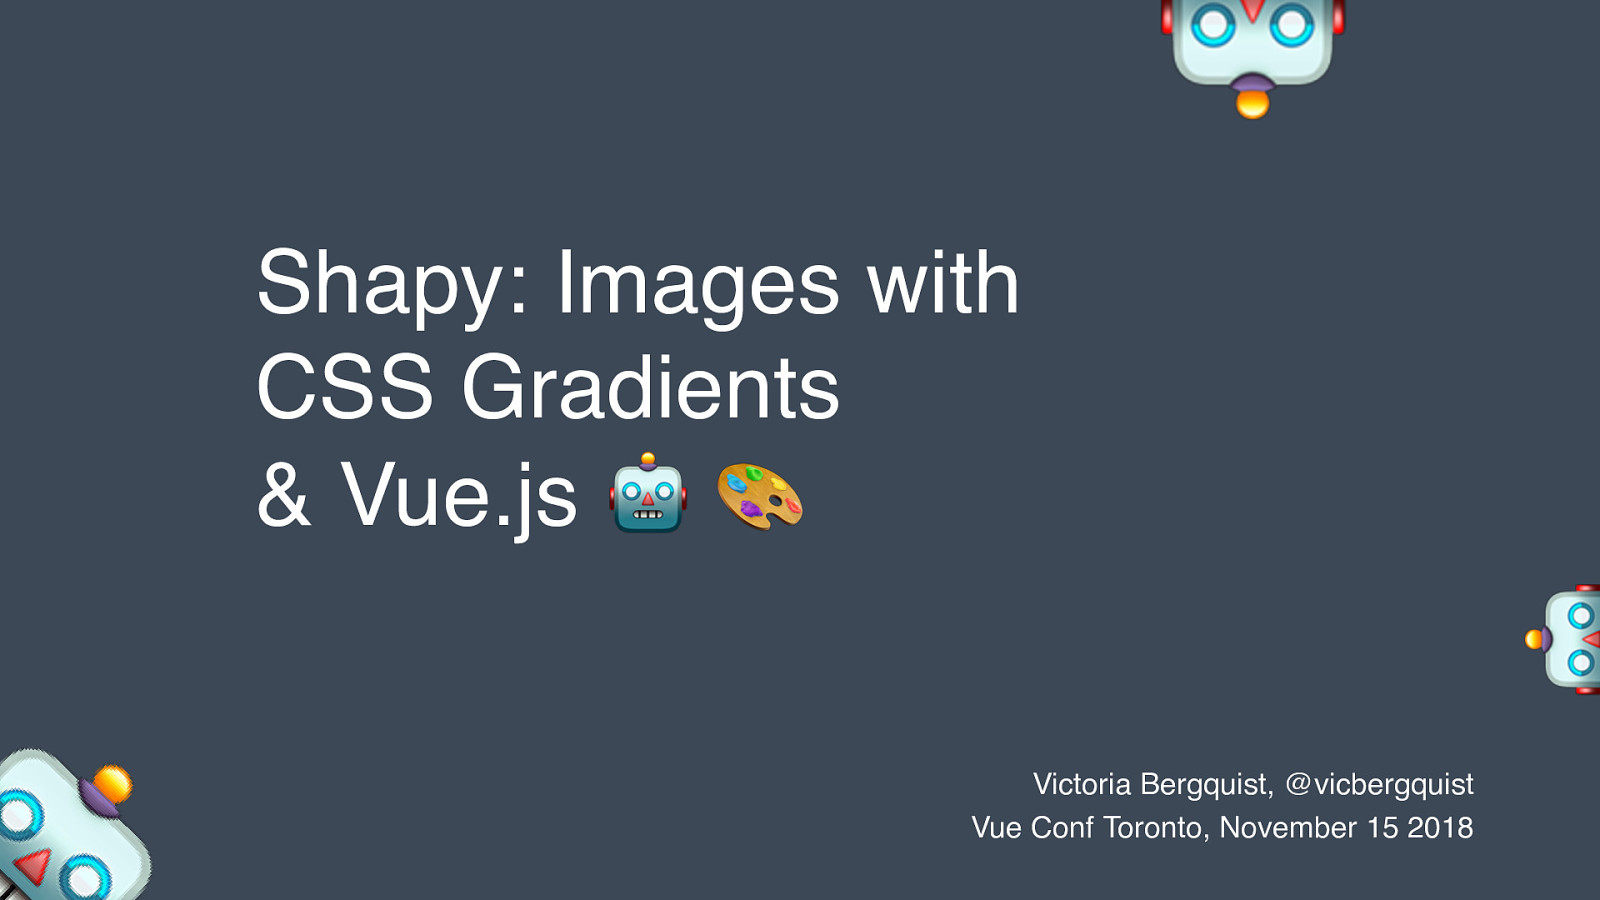 Shapy: Images with CSS Gradients & Vue.js